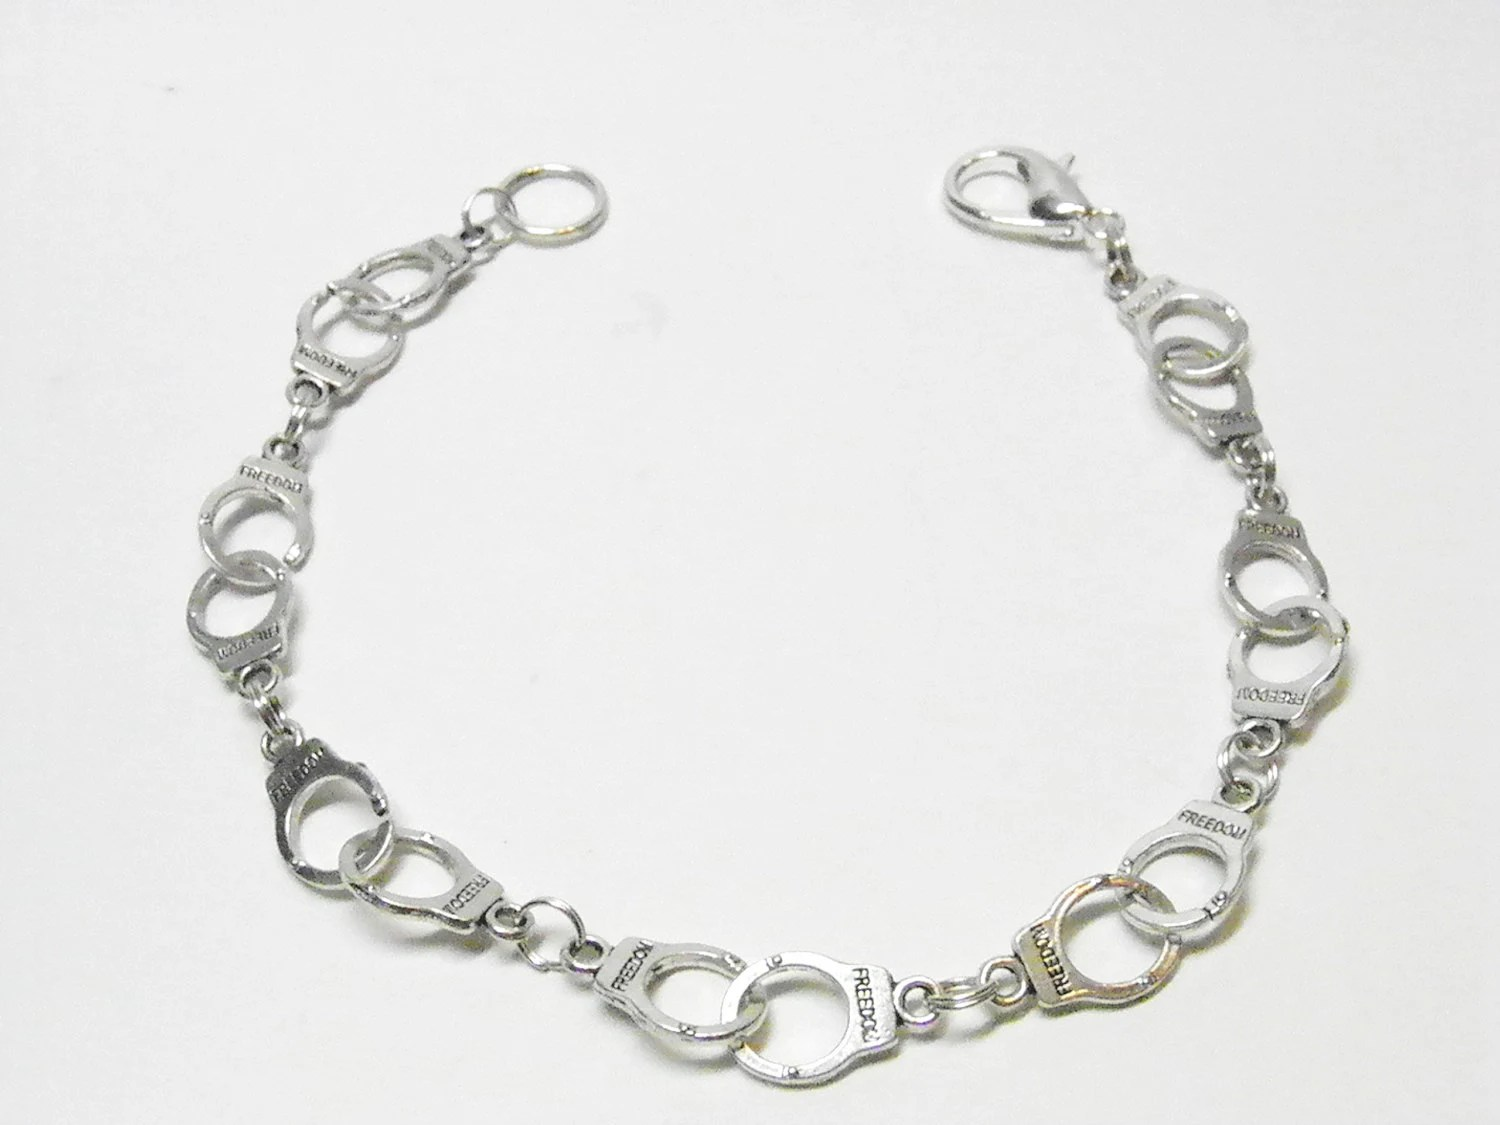 Popular items for bdsm jewelry on Etsy